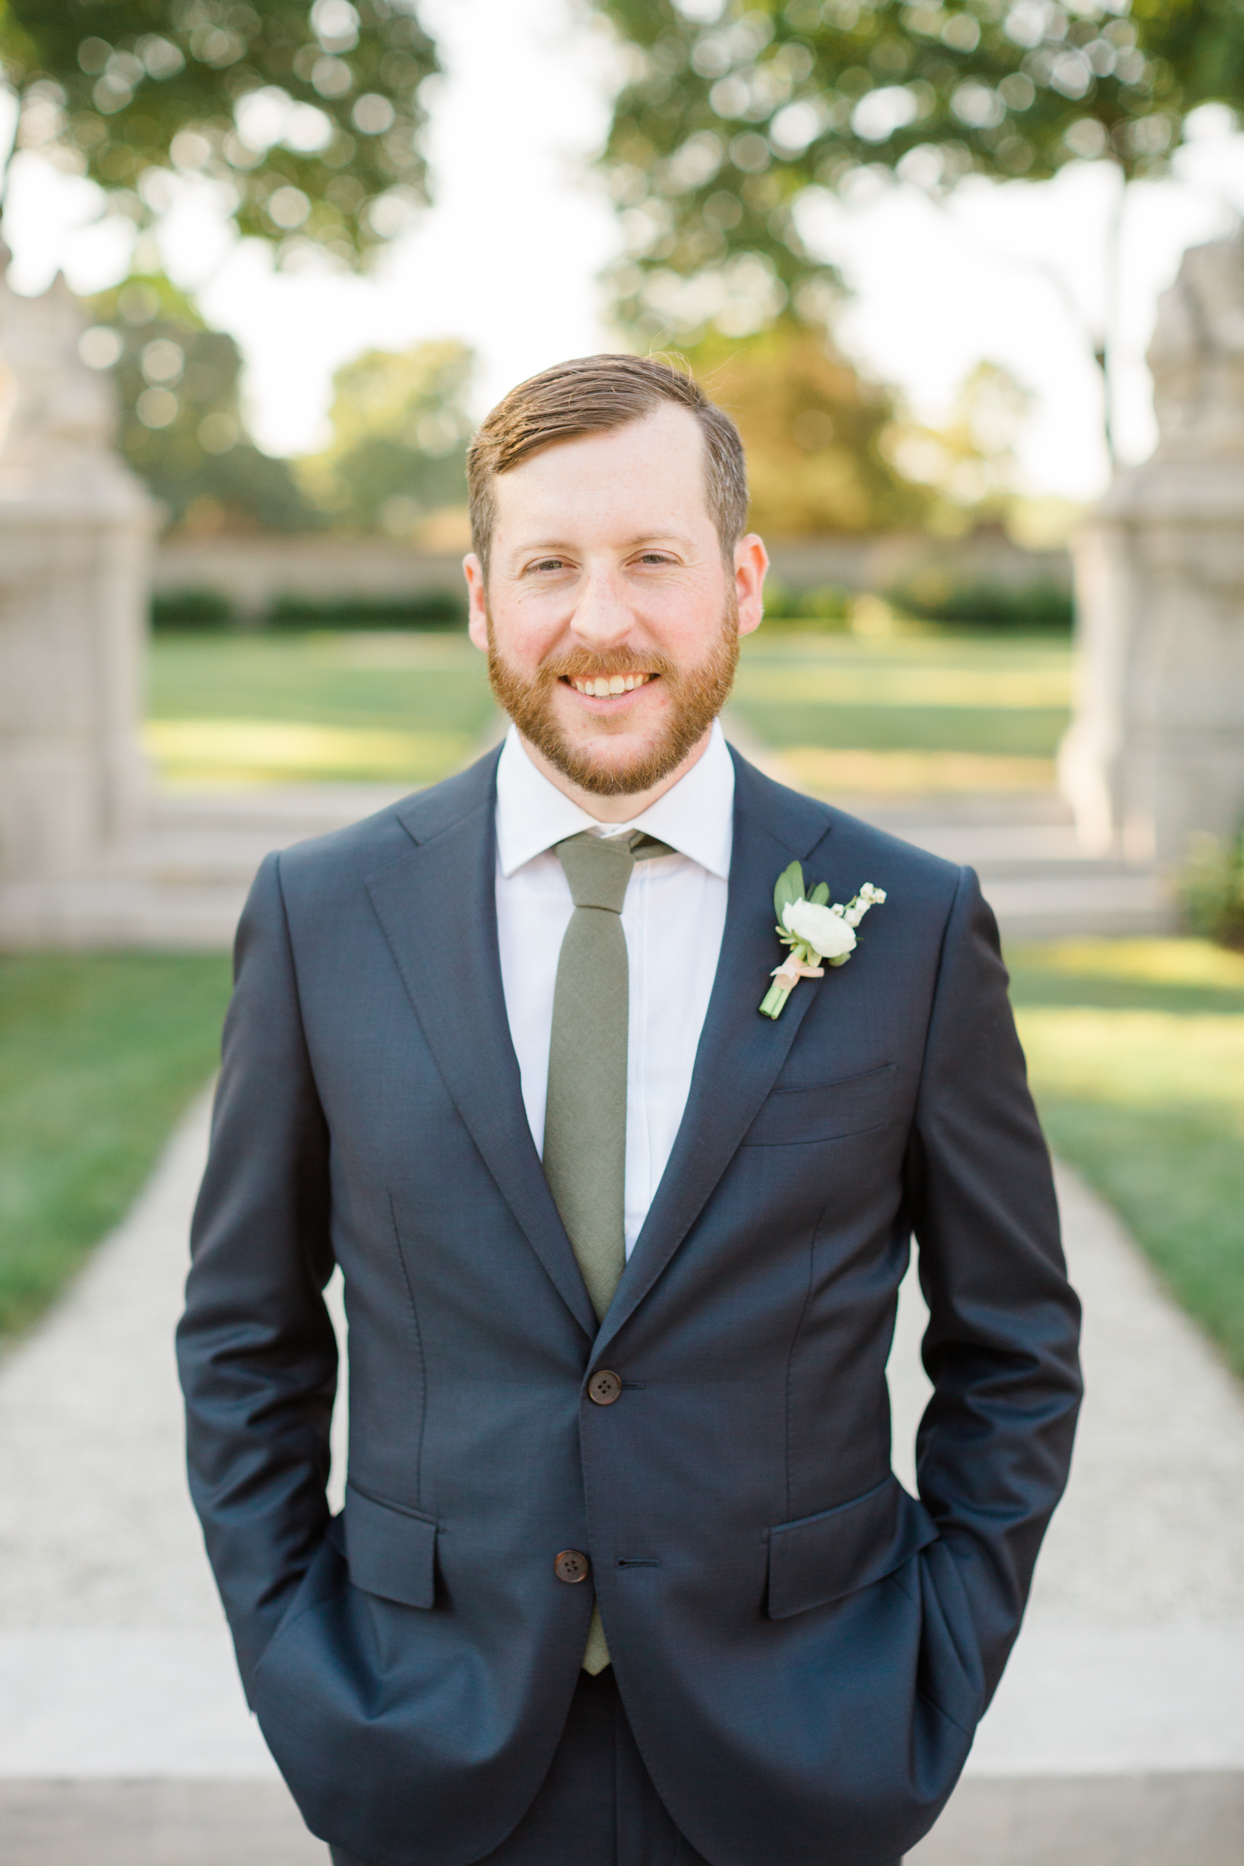 groom in wedding suit with green tie